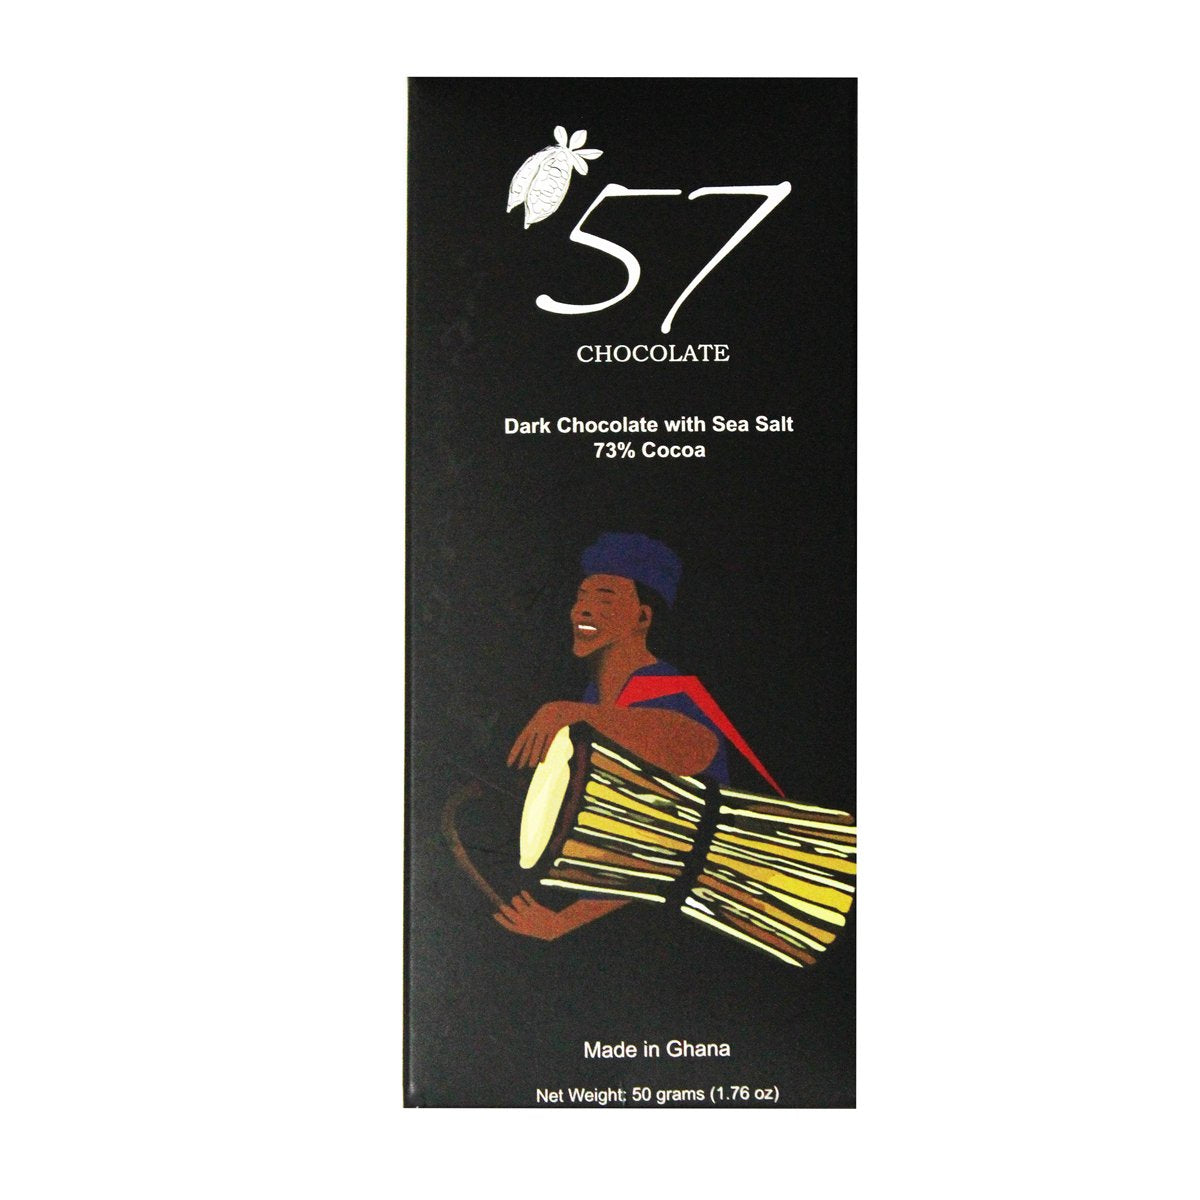 57 Chocolate 73% dark chocolate (Sea Salt)